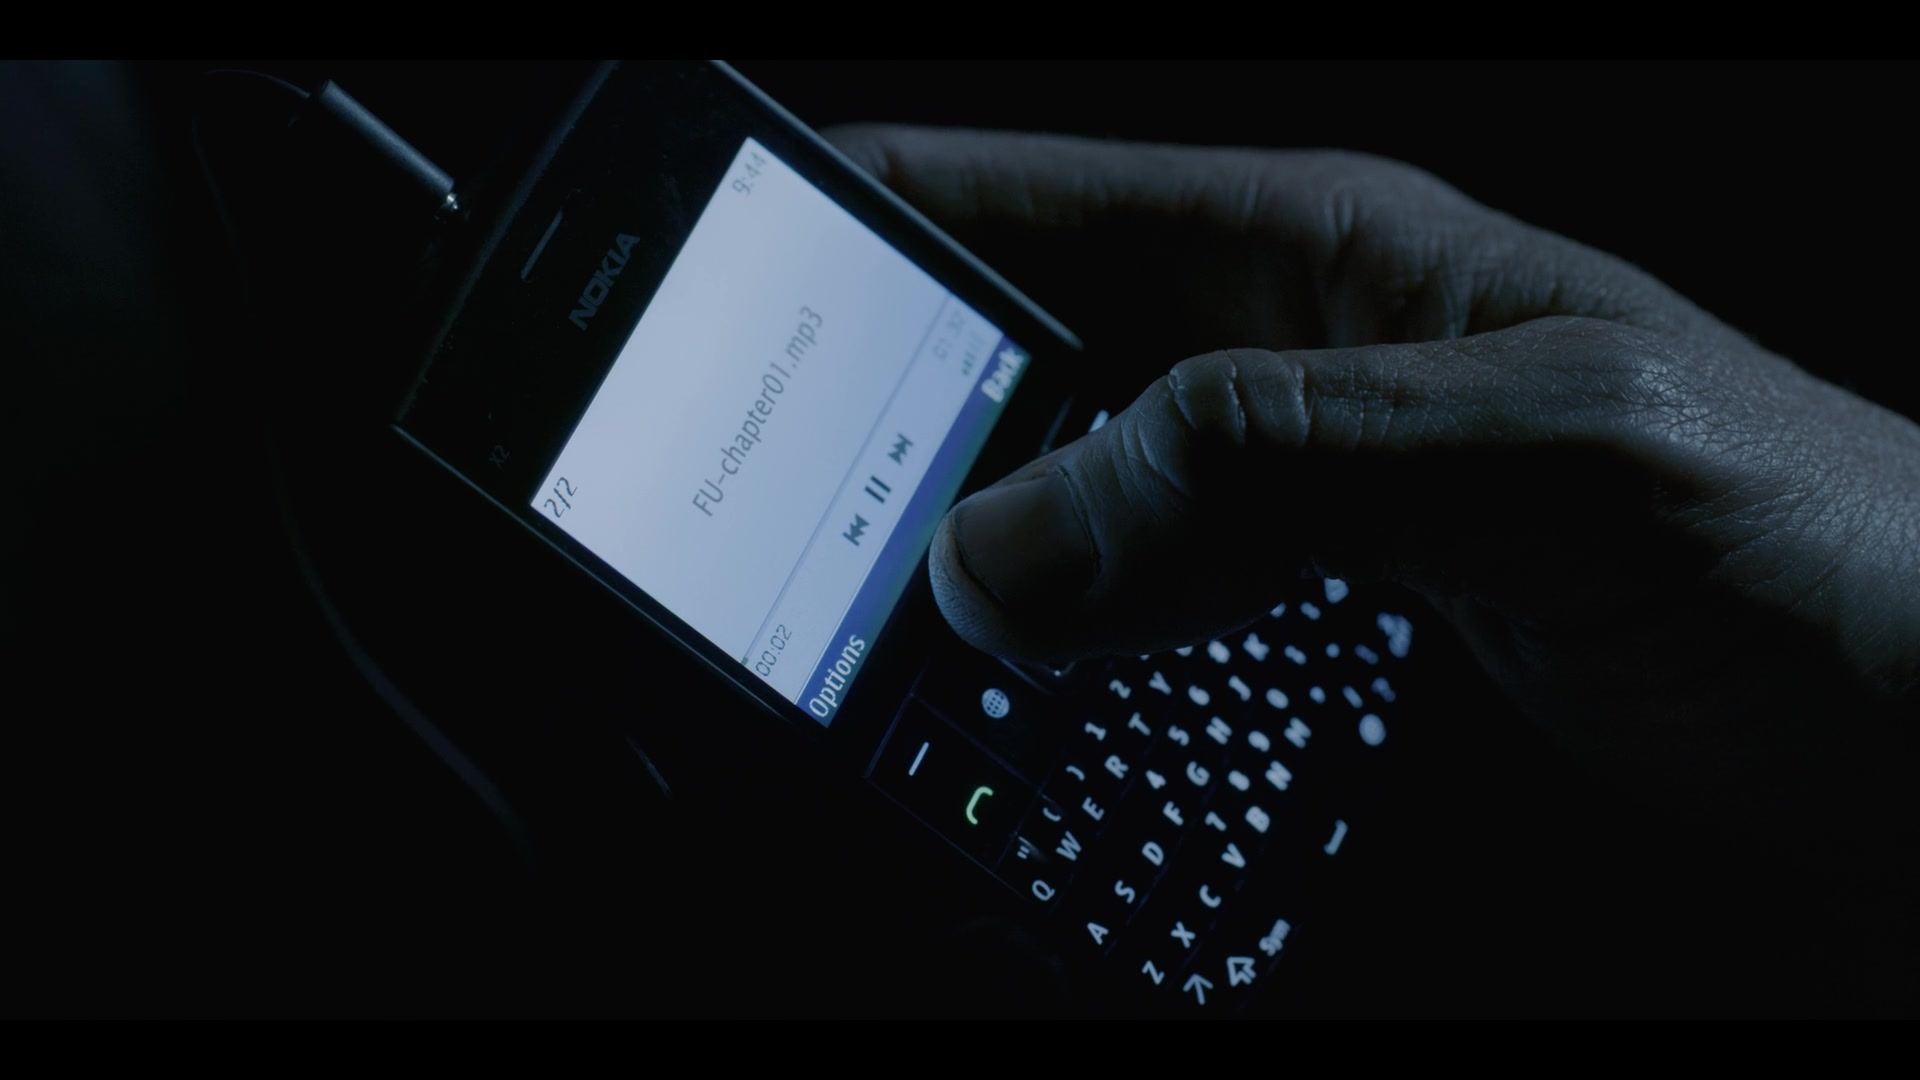 Nokia Phone In House Of Cards Season 6 Episode 7 Chapter 72 2018